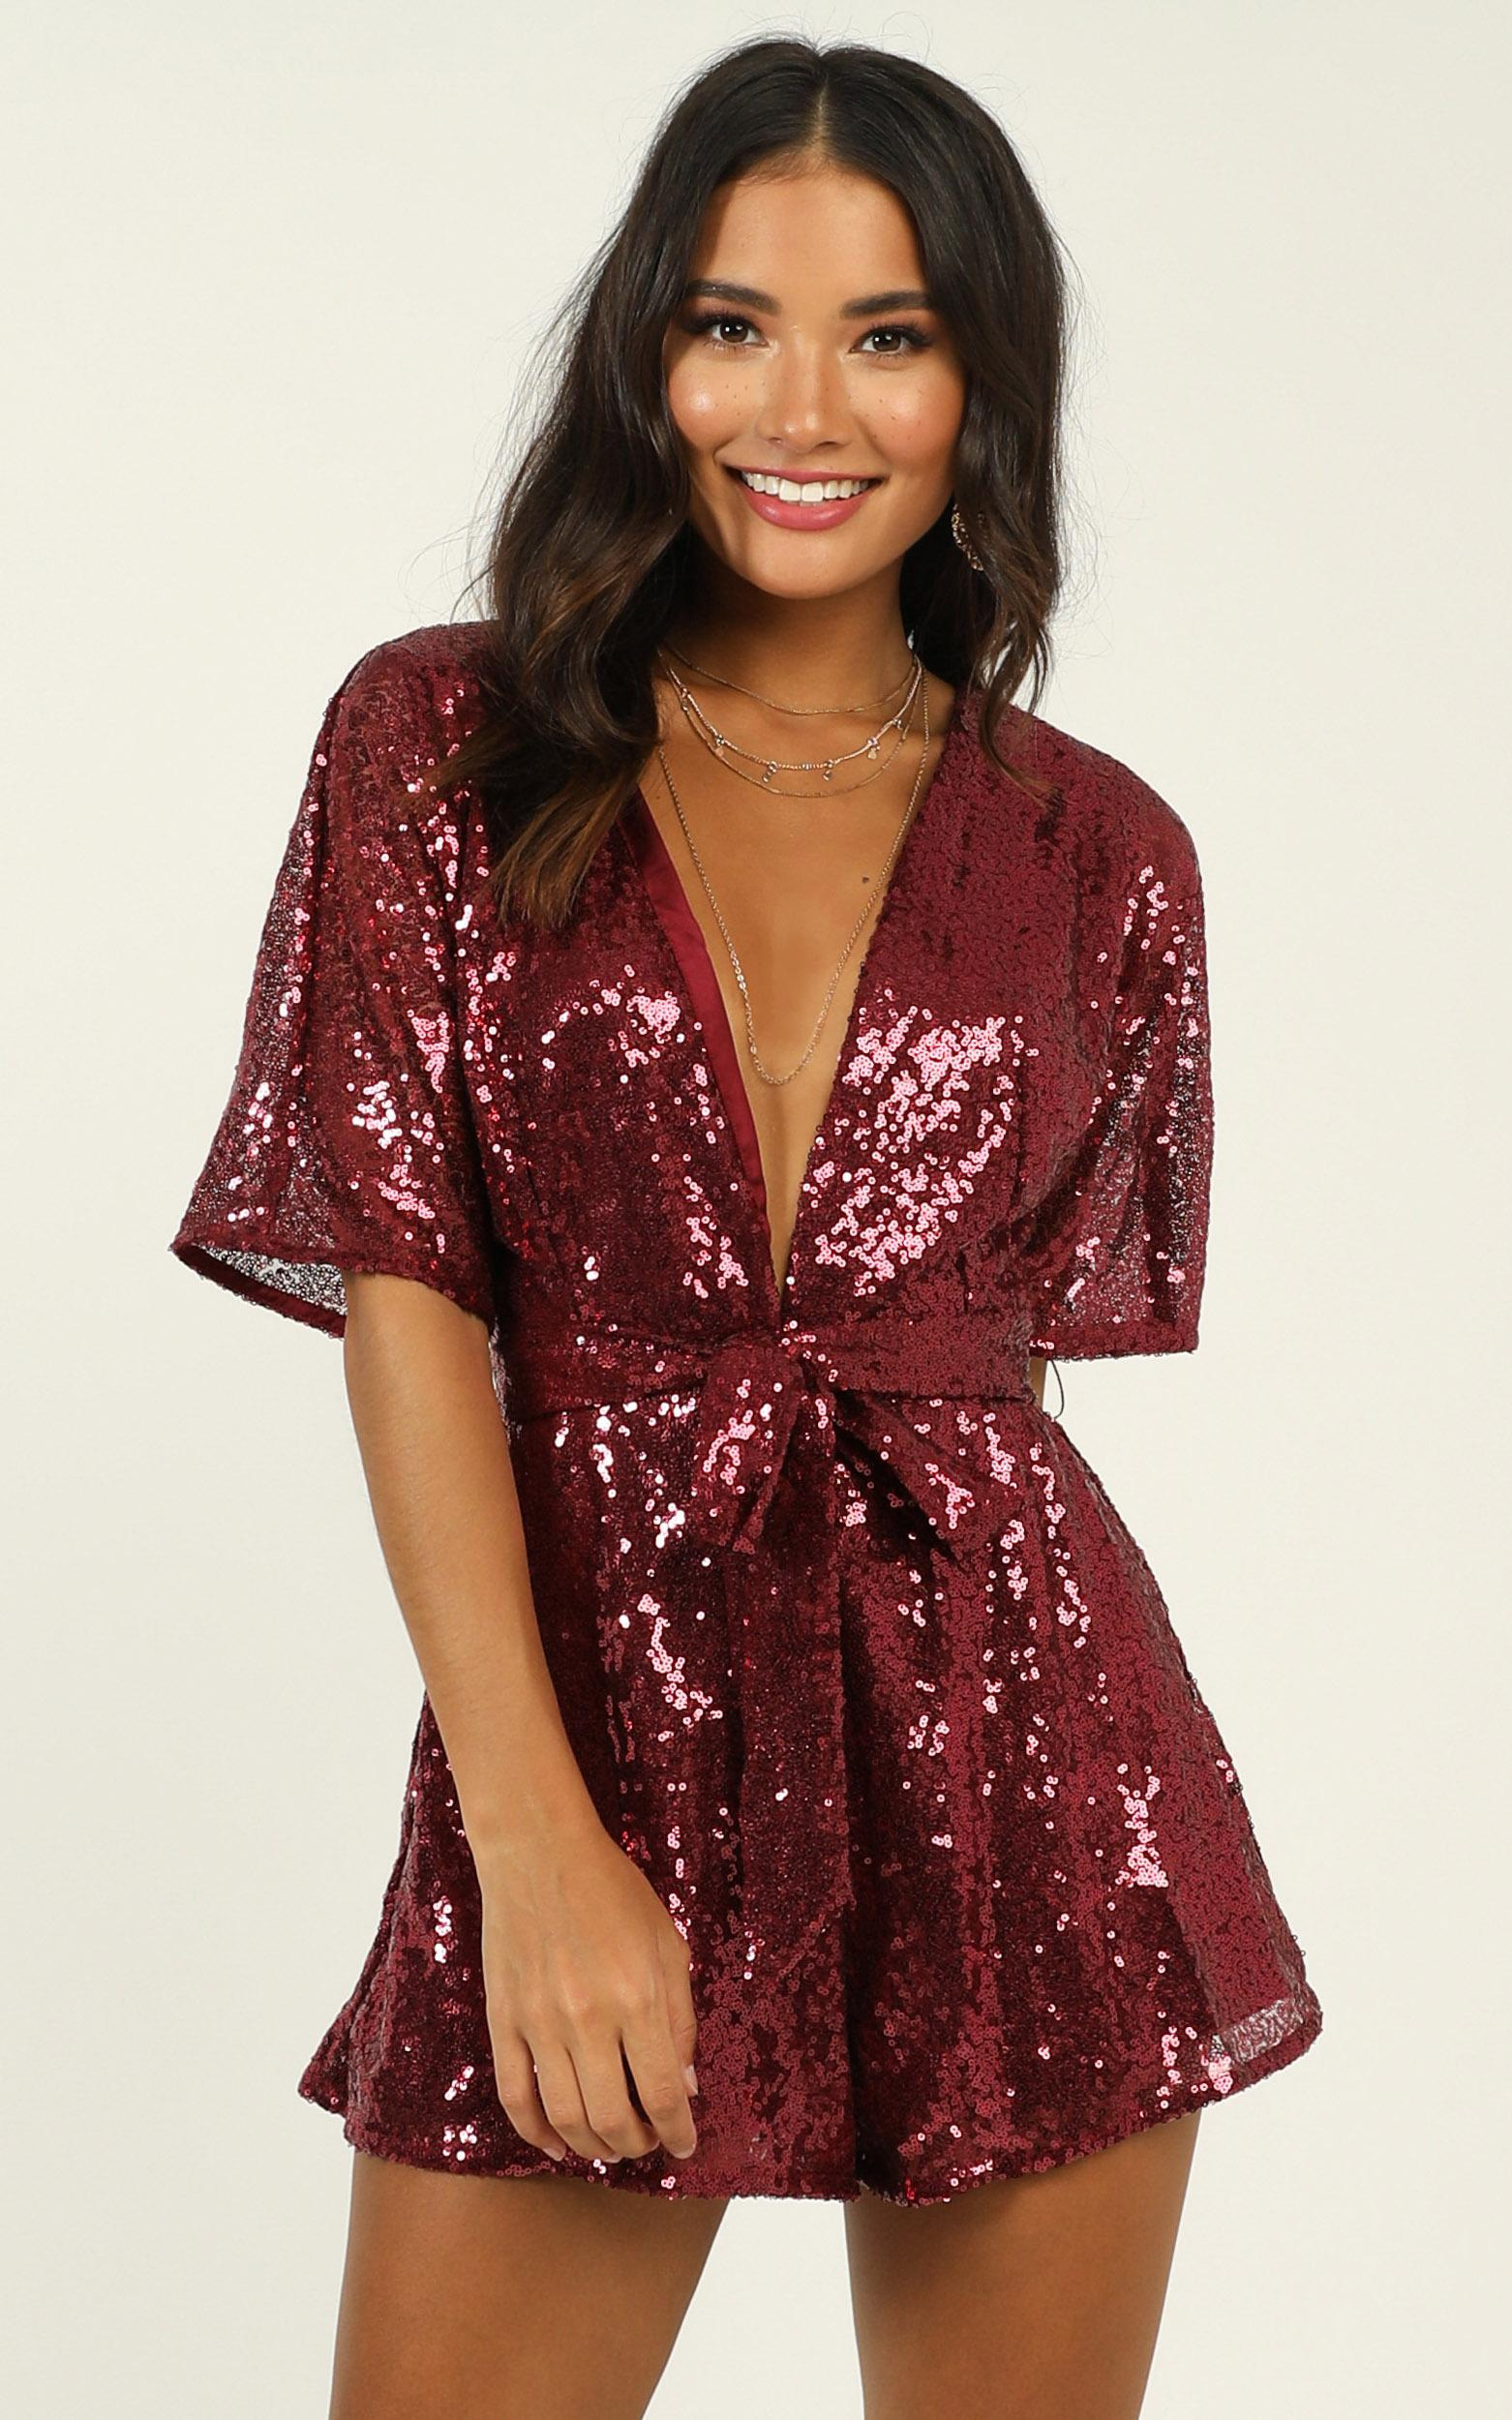 Star Behaviour Playsuit in wine sequin - 20 (XXXXL), Wine, hi-res image number null